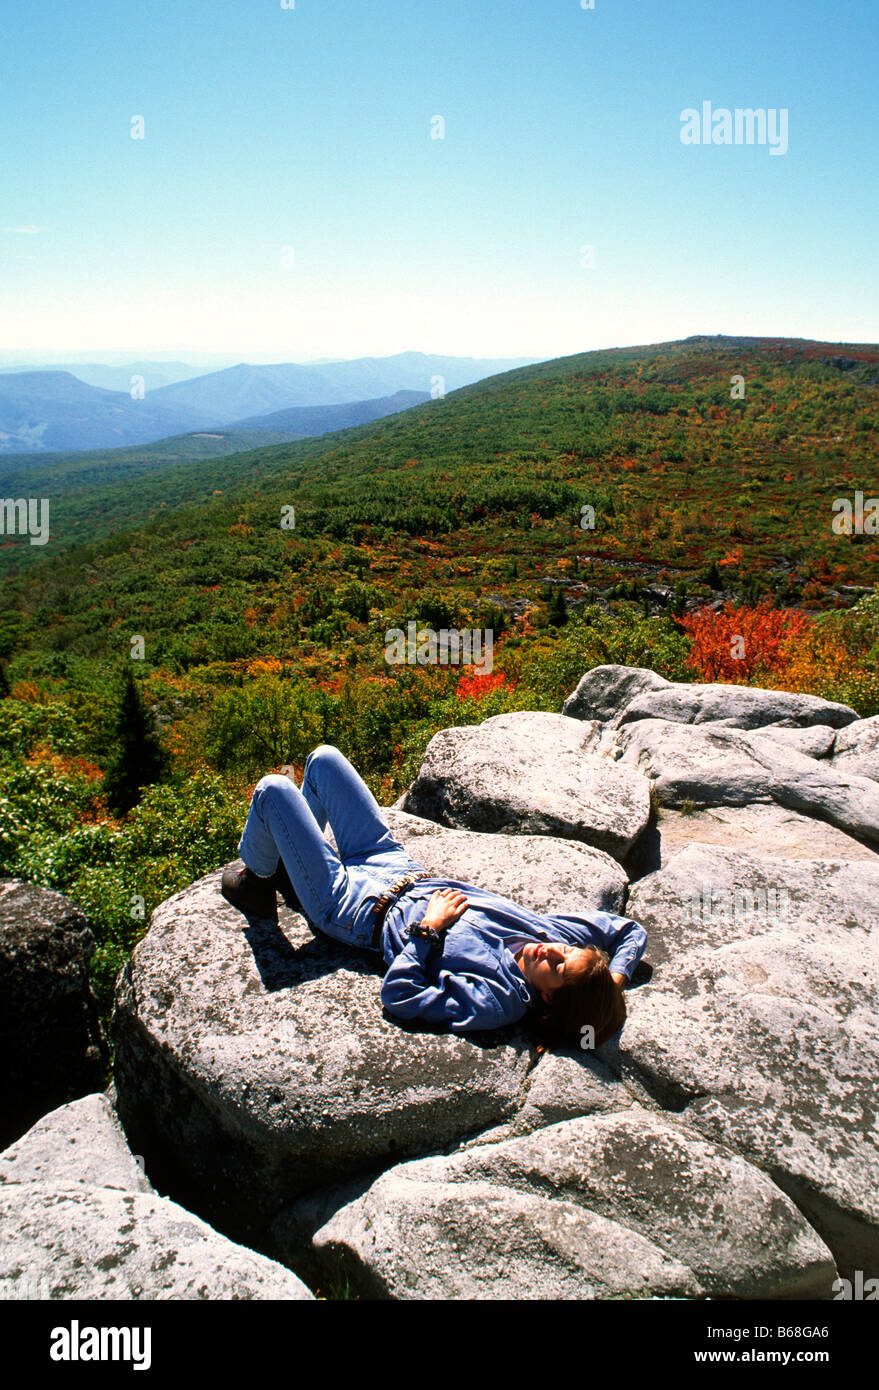 A woman enjoys resting in the sunshine on a mountain overlook Dolly Sods West Virginia - Stock Image